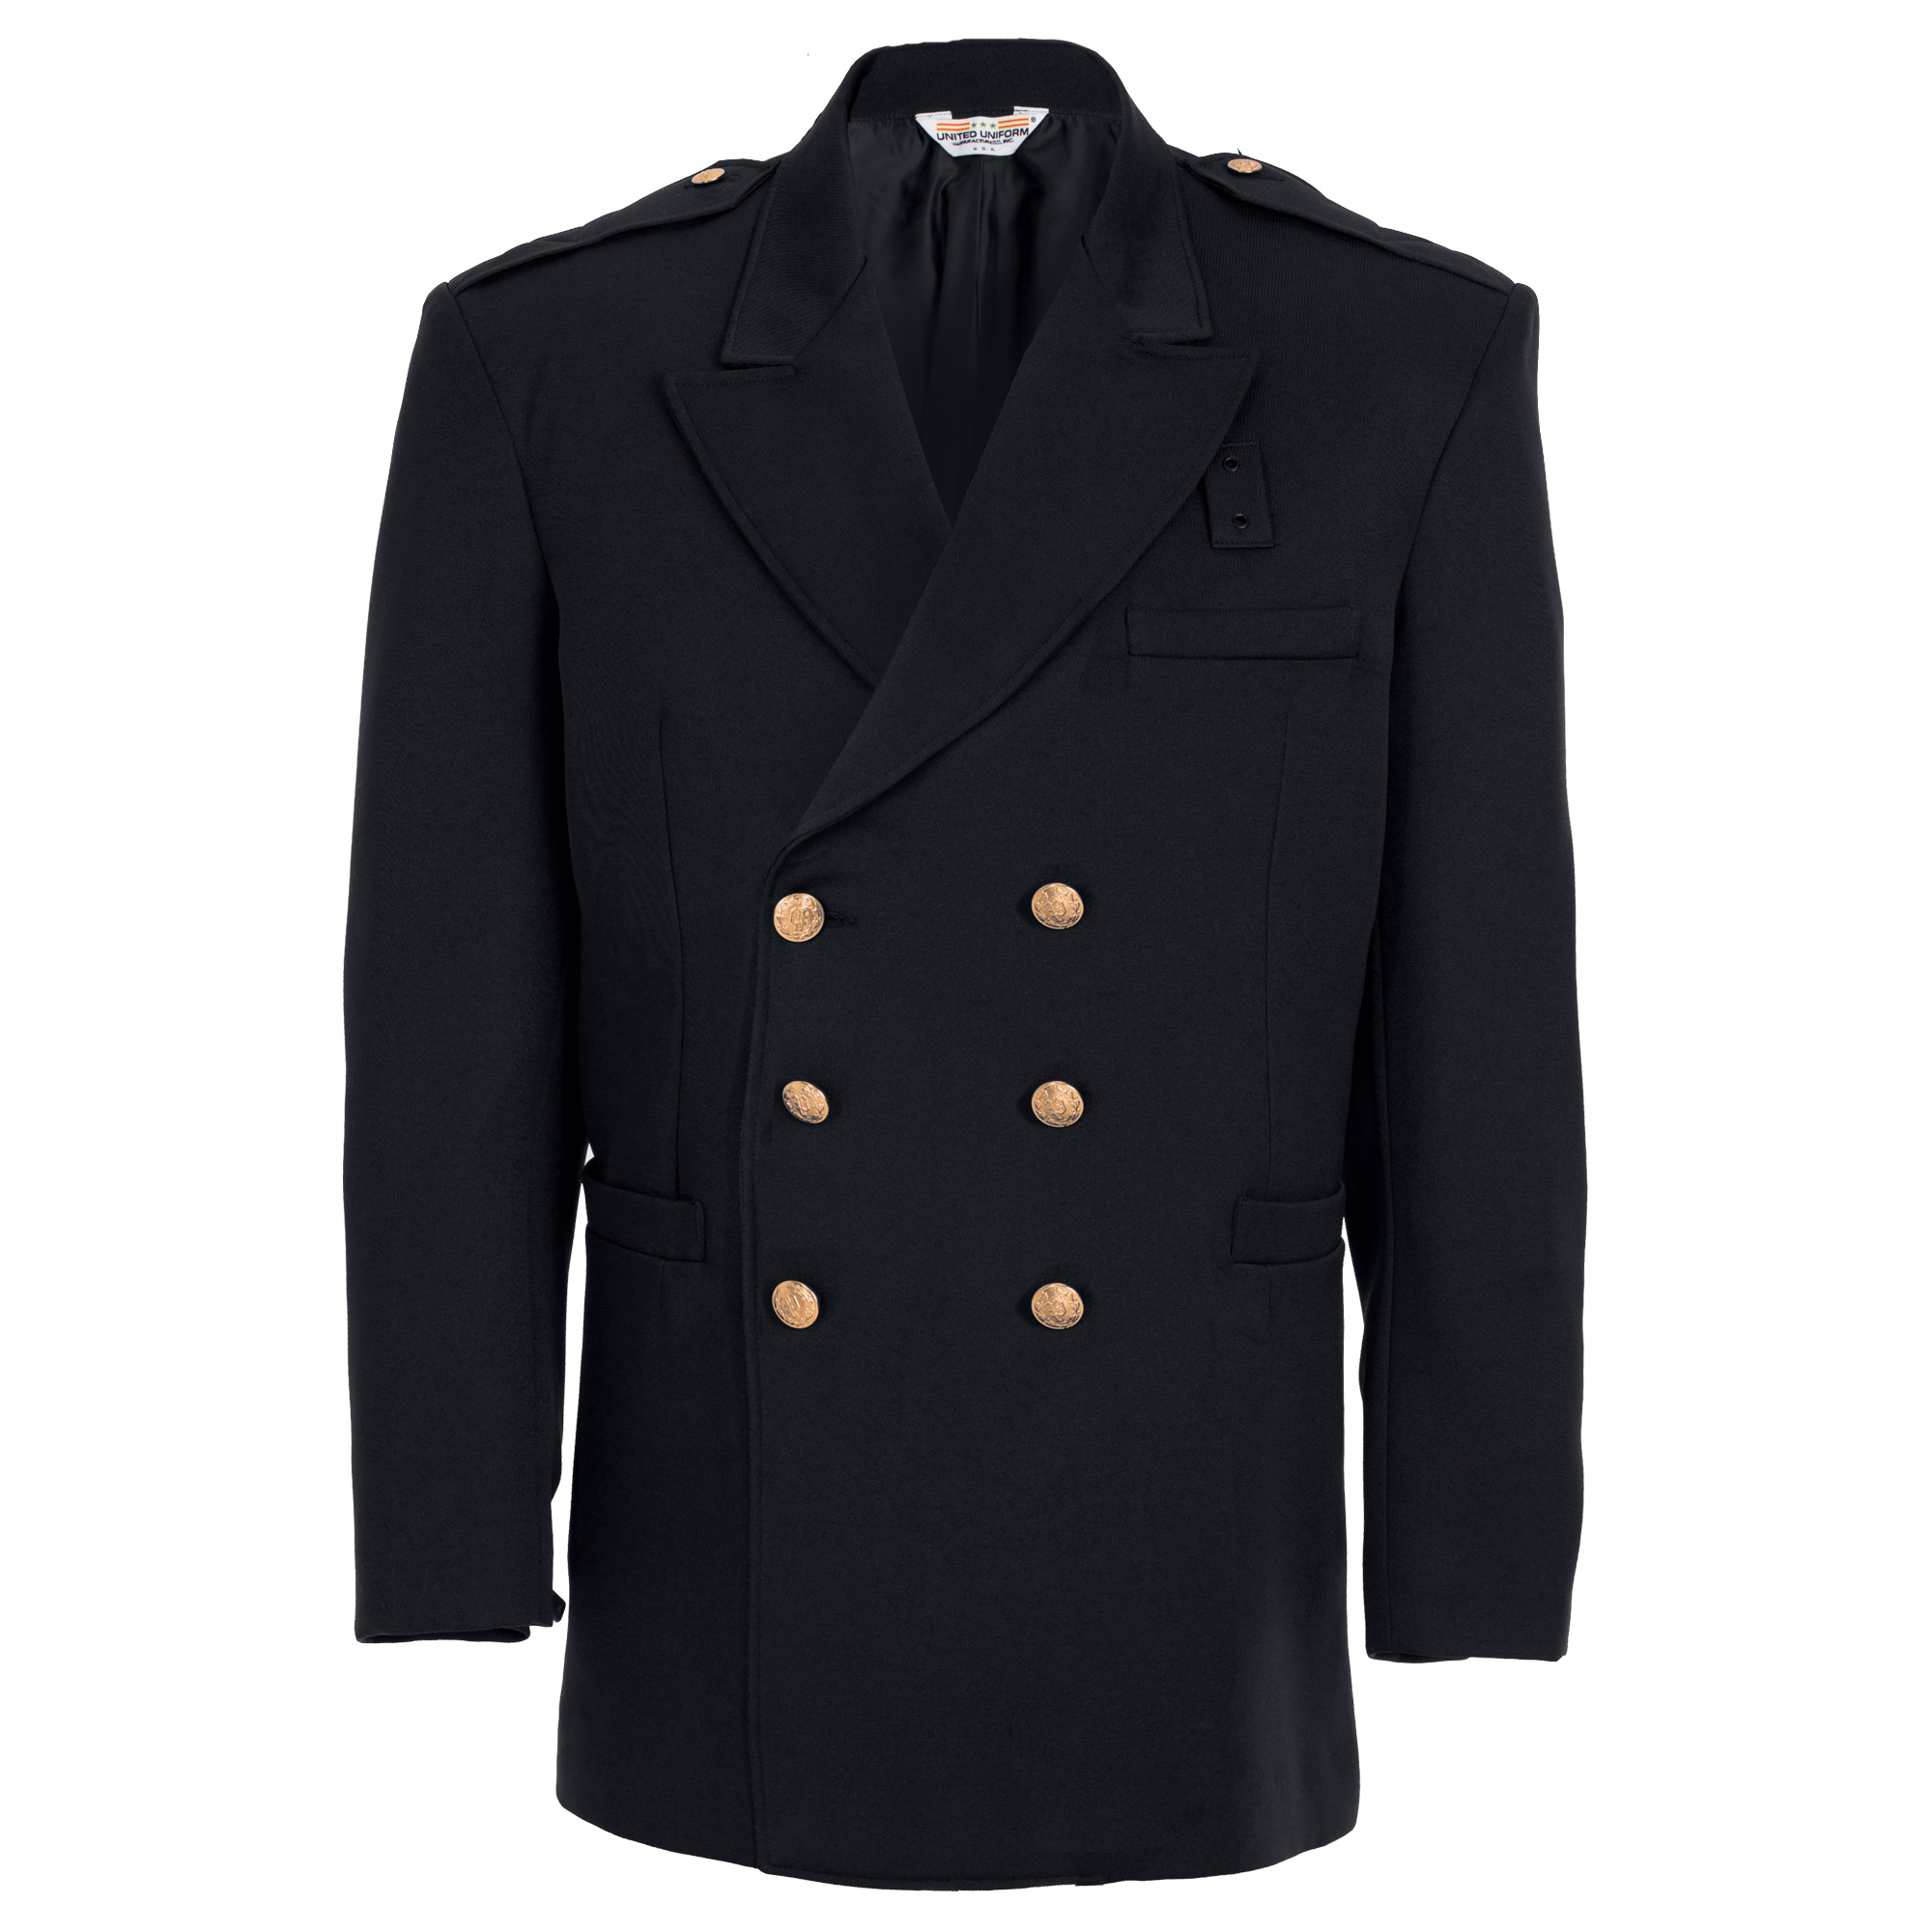 10704SF Double Breasted Dress Coat - Serge Weave-United Uniform Manufacturers